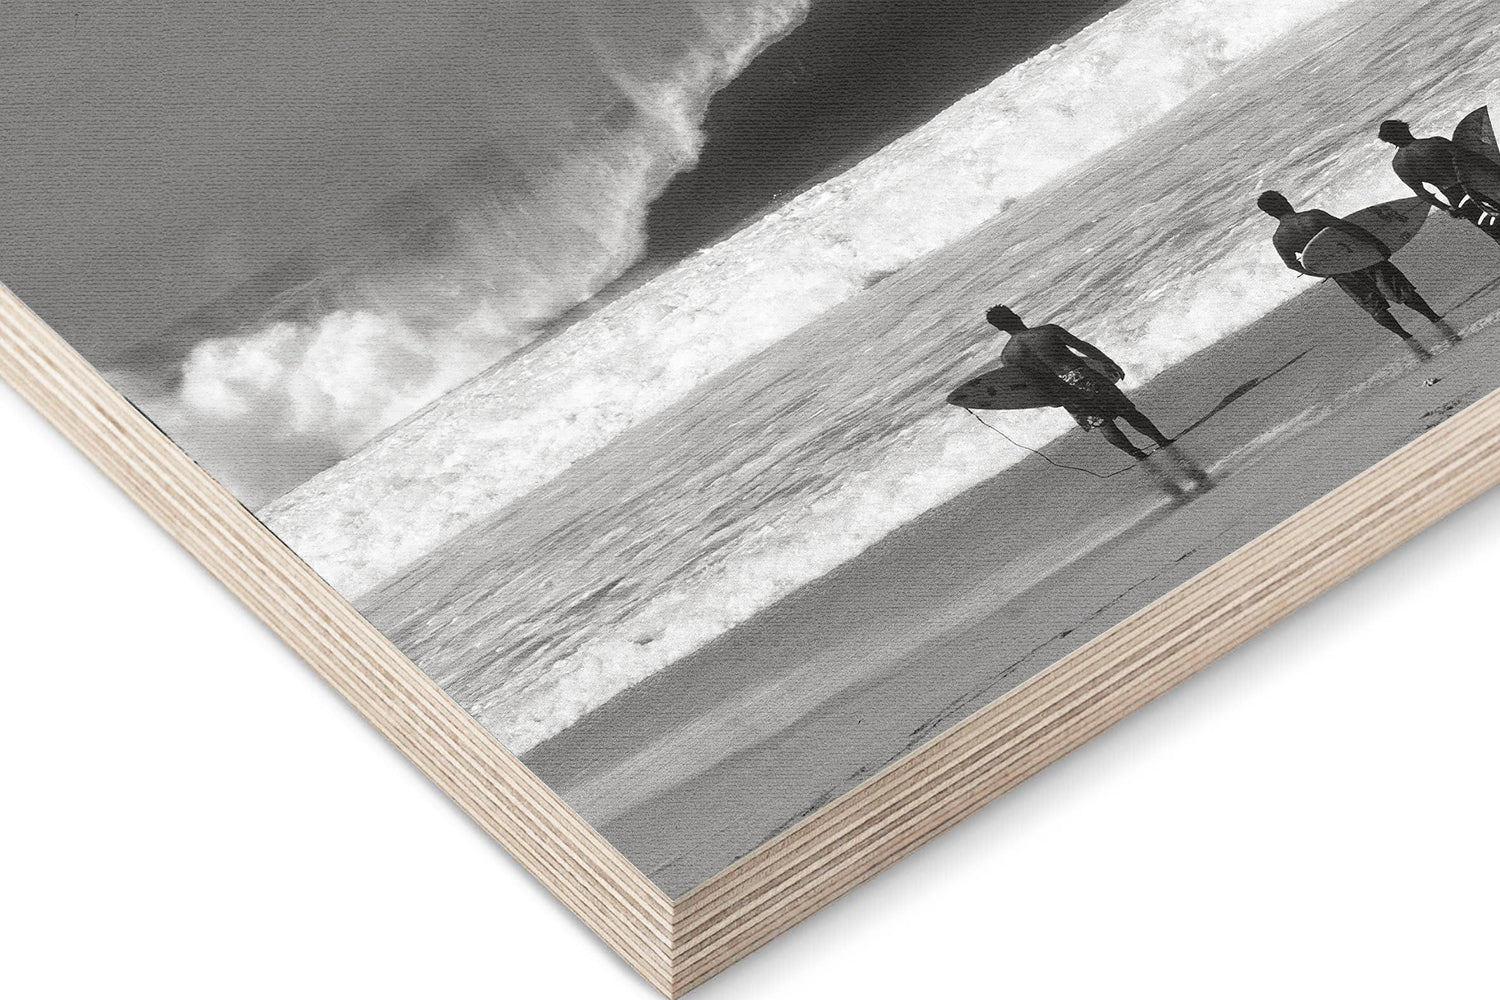 Surfing Wood prints by Sea Of Seven of the surf spot Pipeline by Jack English located on the North Shore  of Oahu in Hawaii.